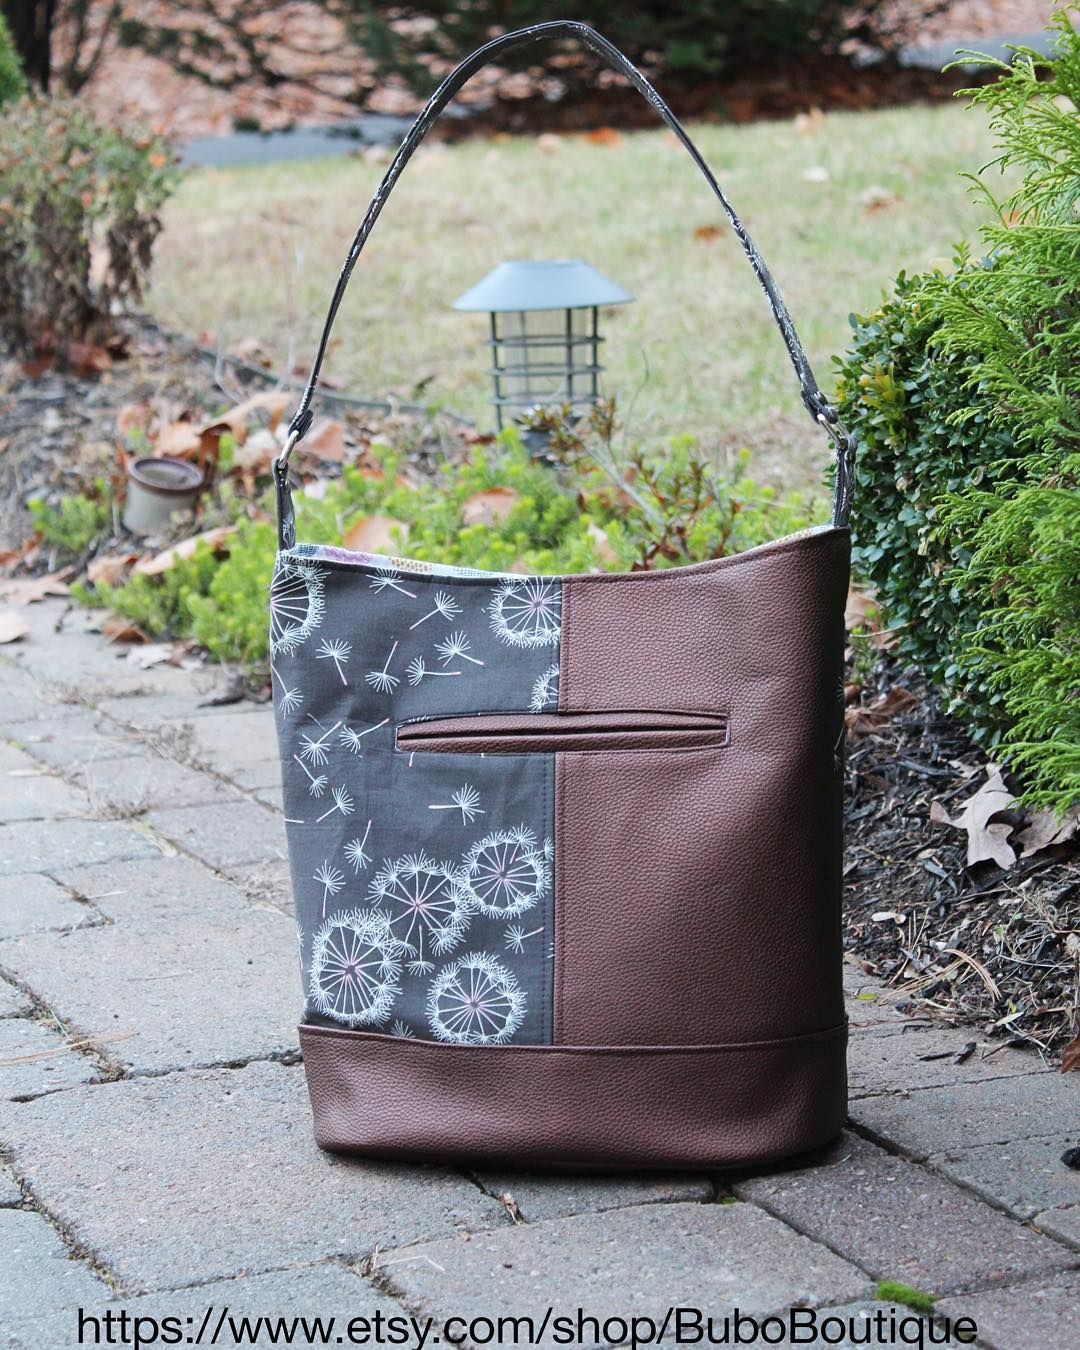 """2eedd85f5b12 """"And here is another Bonnie bucket bag (pattern by Swoon). Love this bag!  And ❤️the sketchbook collection by Art Gallery Sharon Holland  bonniebag…"""""""